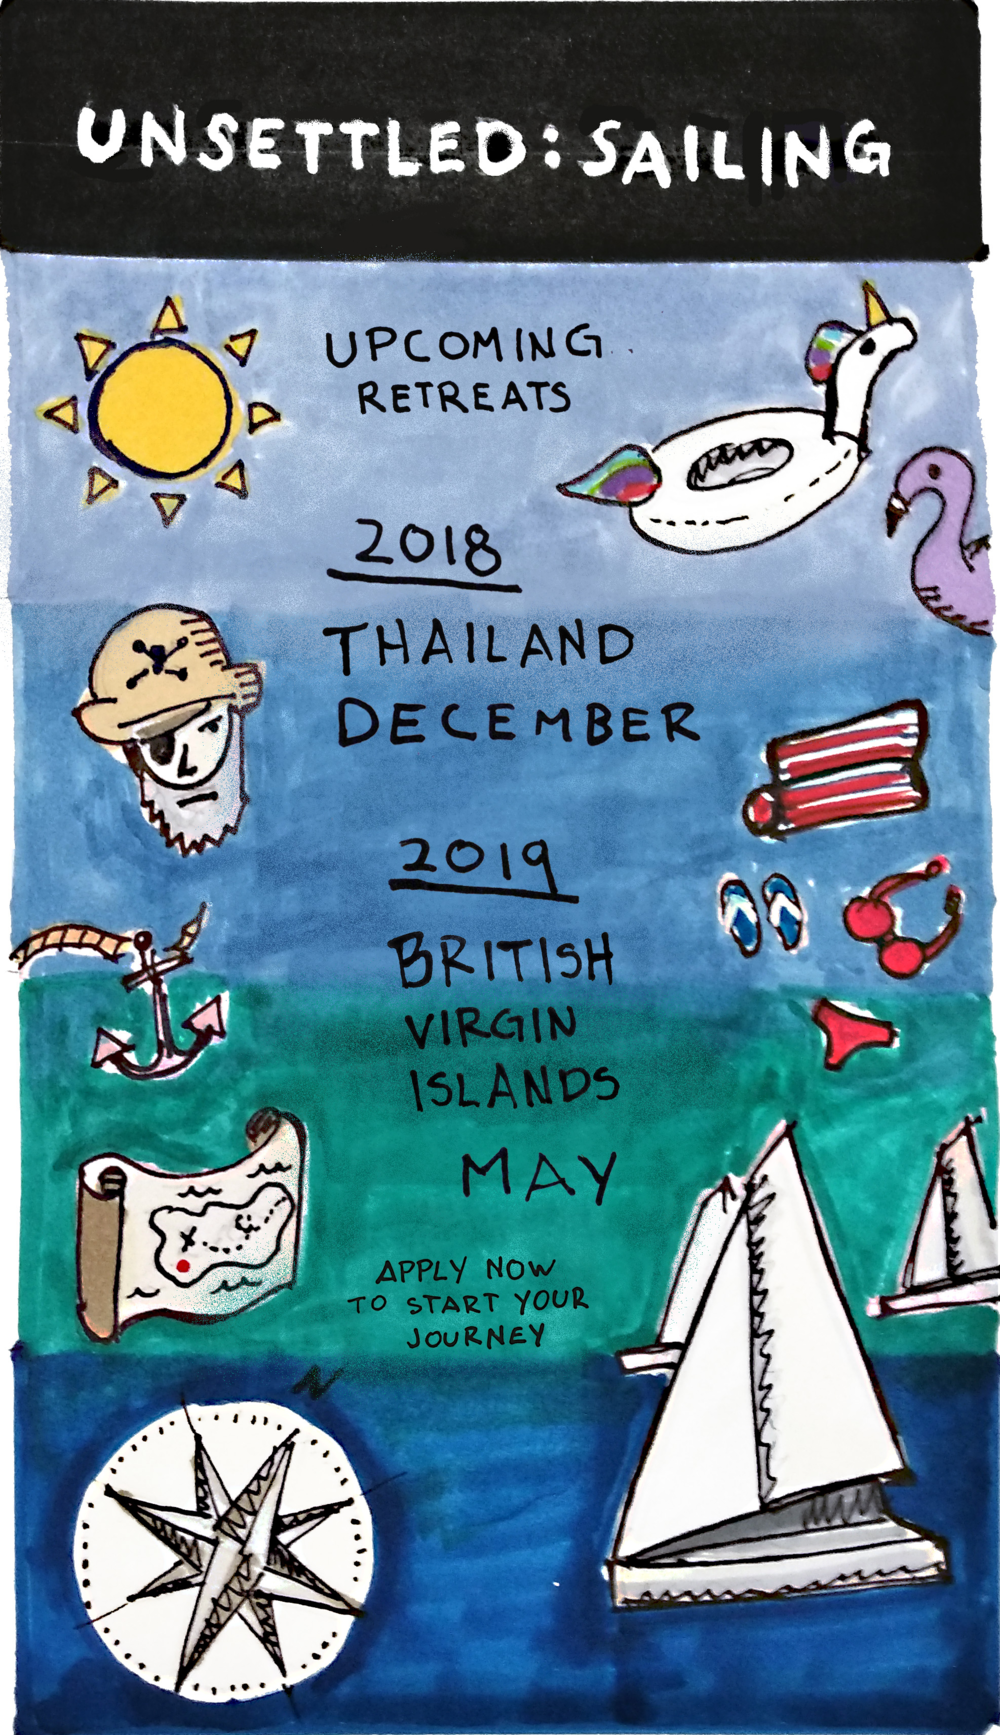 Unsettled: Sailing - DECEMBER 14 - 21, 2018MAY 11 - 18, 2019